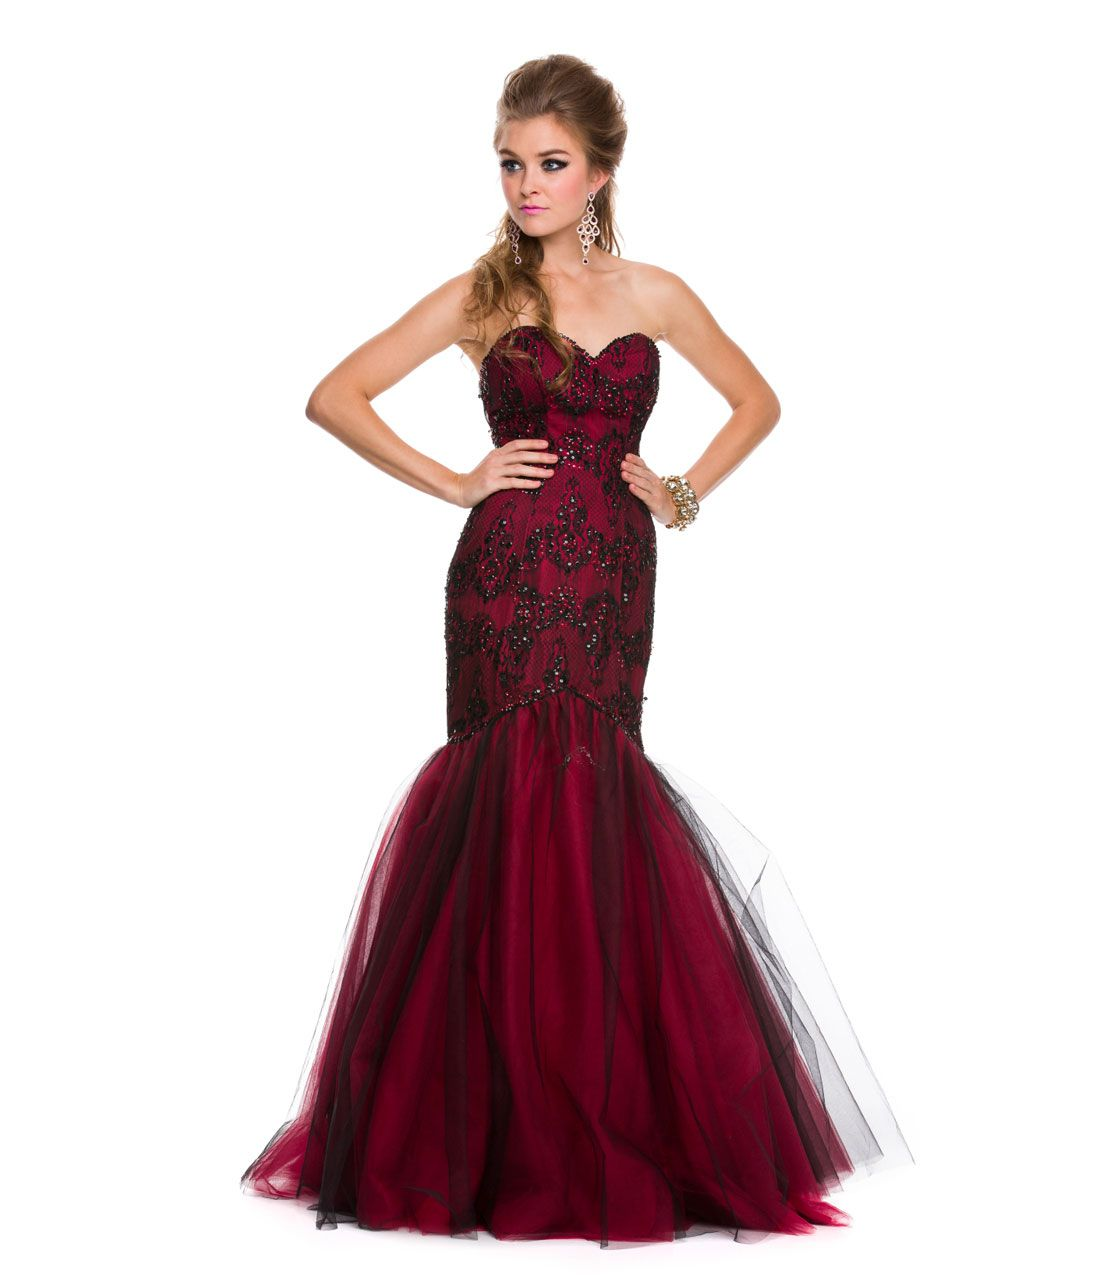 2014 prom dresses red amp black strapless mermaid gown